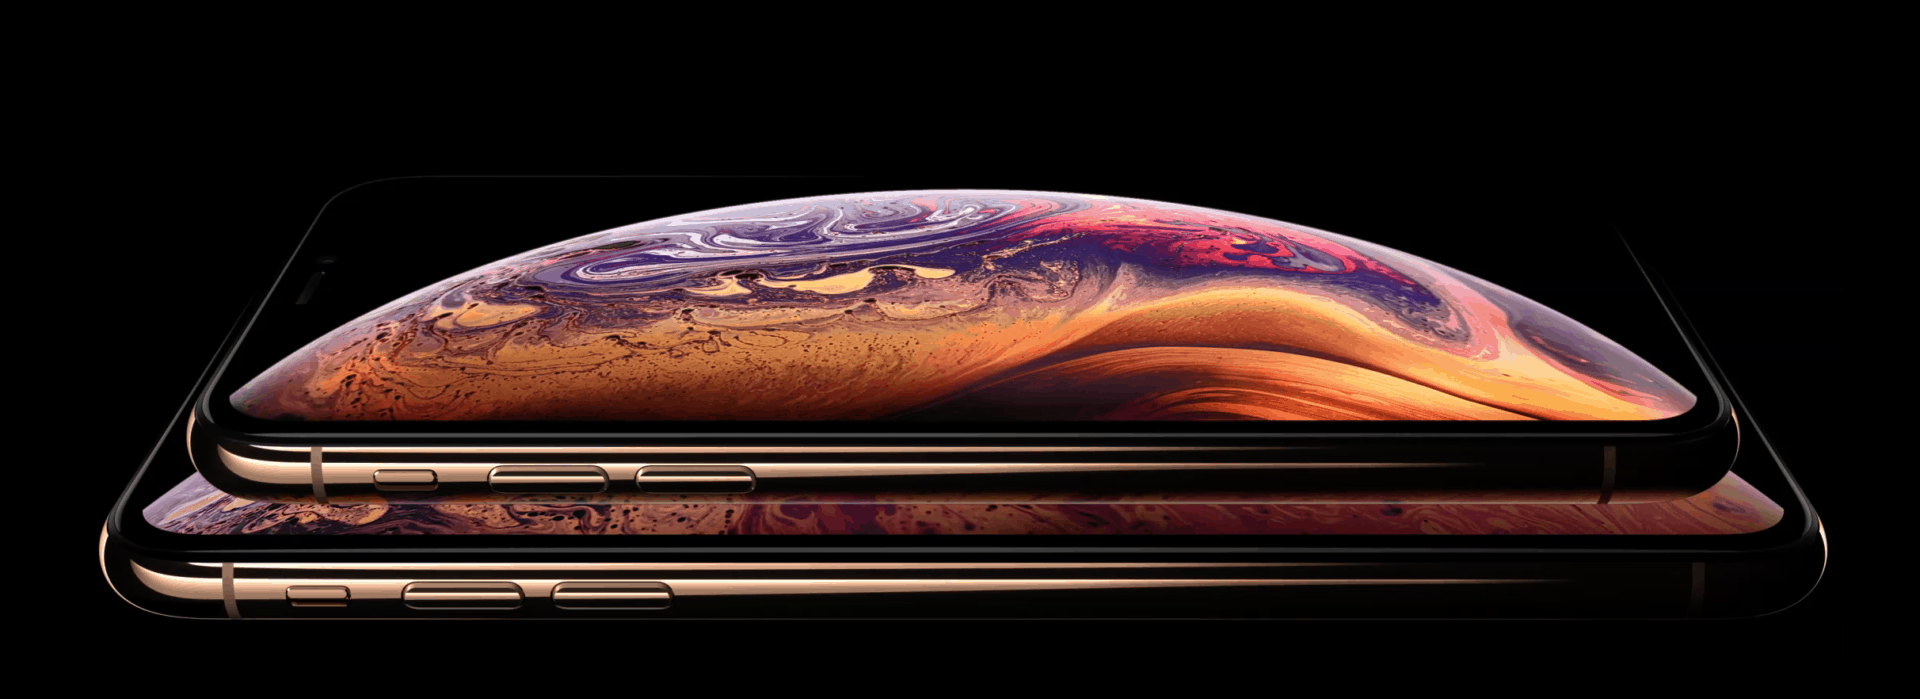 Novinky z letošního Apple Eventu? iPhone Xs, iPhone Xs Plus a Apple Pay